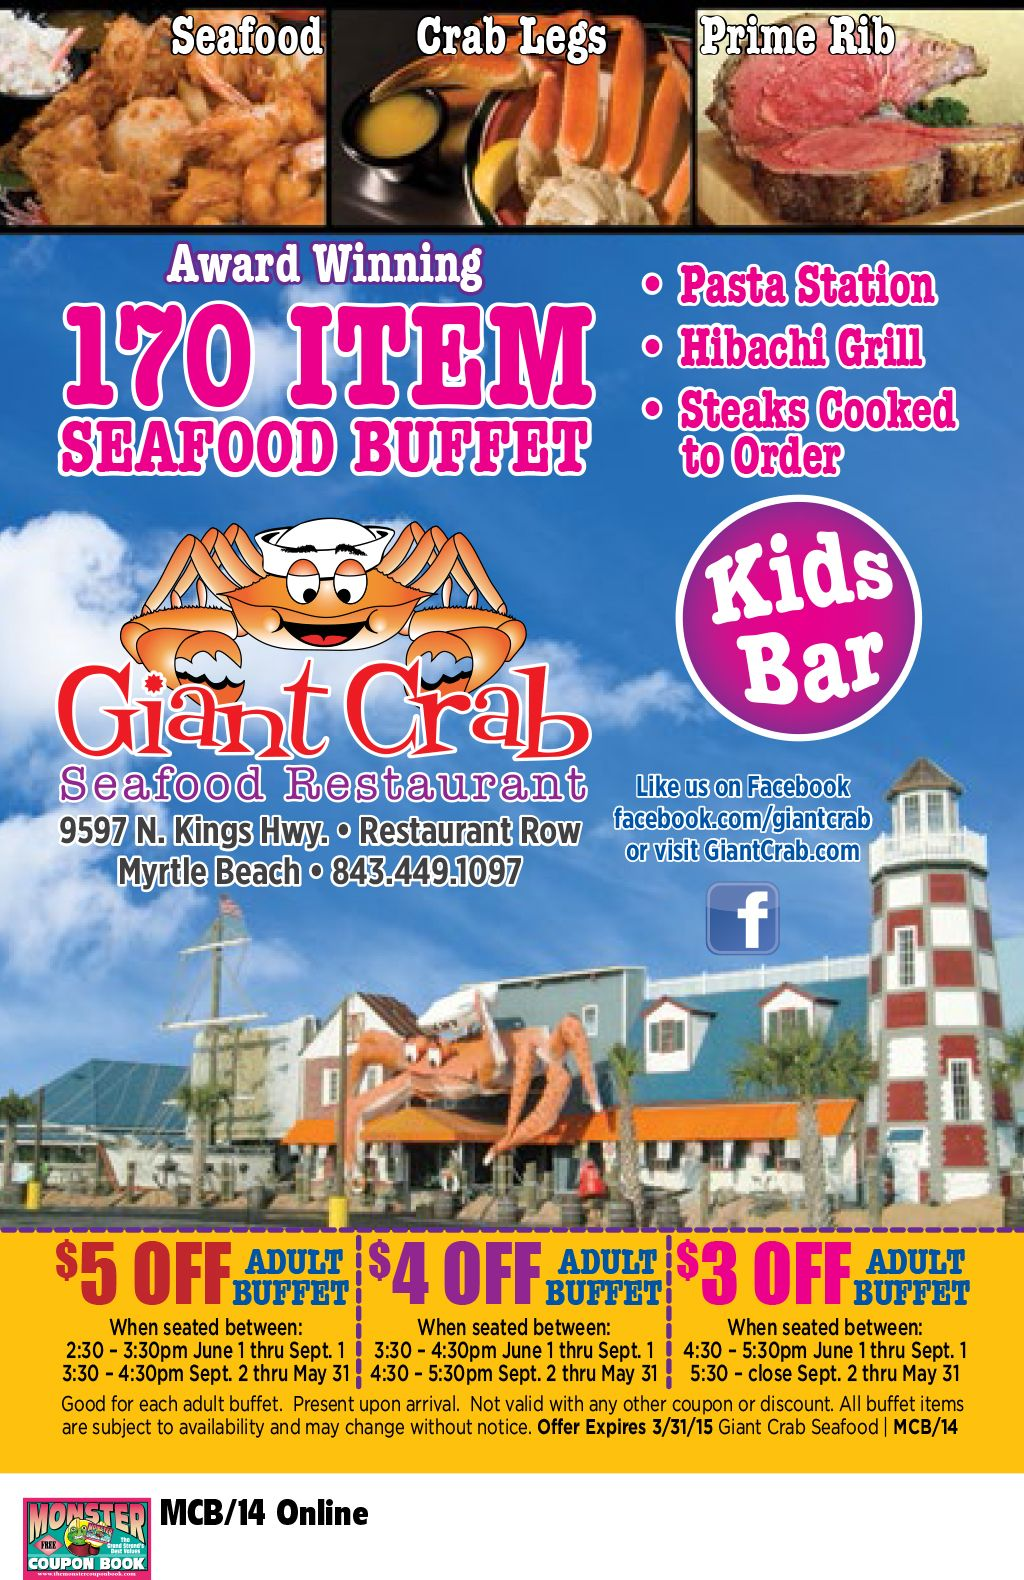 giant crab seafood restaurant myrtle beach resorts coupons for rh pinterest co kr giant crab buffet price myrtle beach giant crab buffet menu